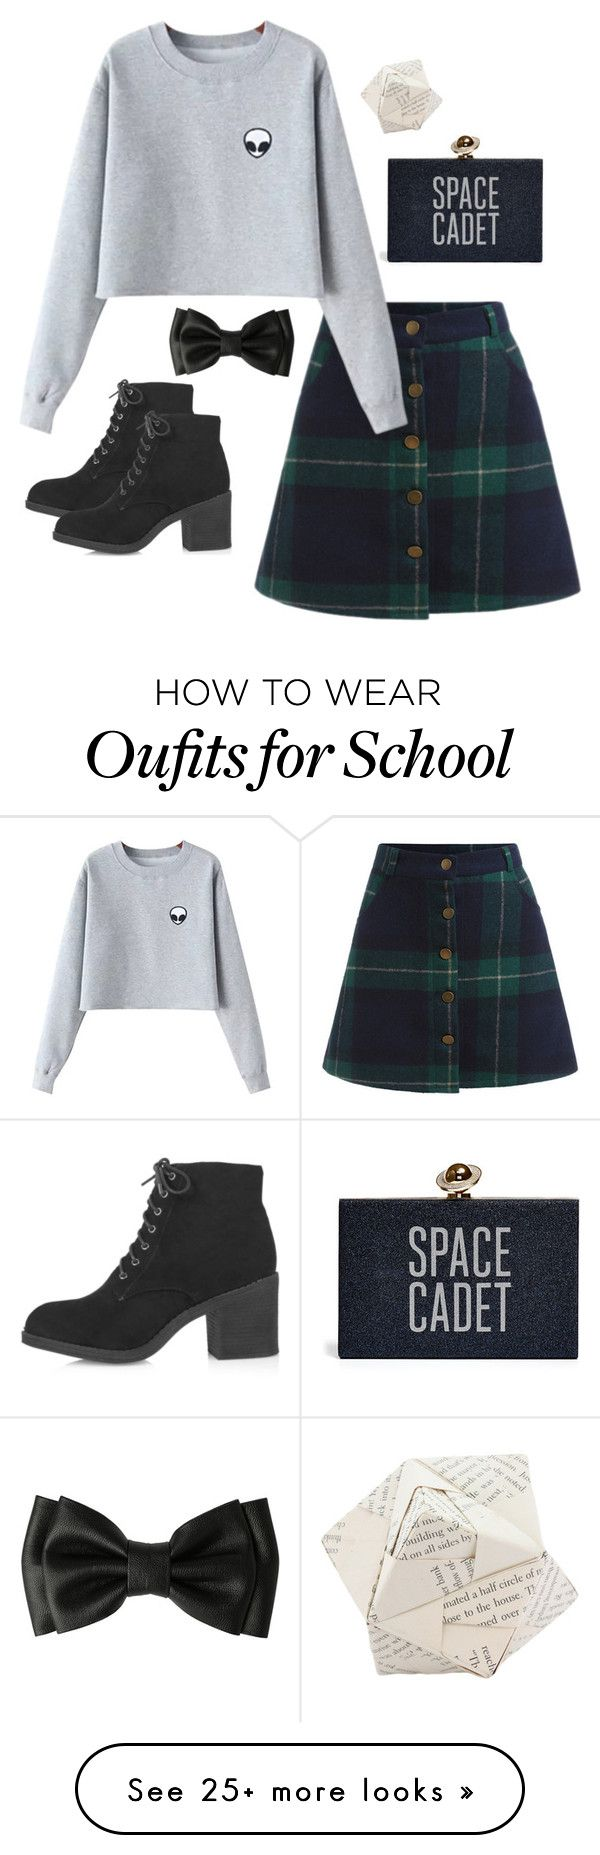 """""""School Grunge"""" by swimsinger on Polyvore featuring Chicnova Fashion, Topshop and Dot & Bo"""